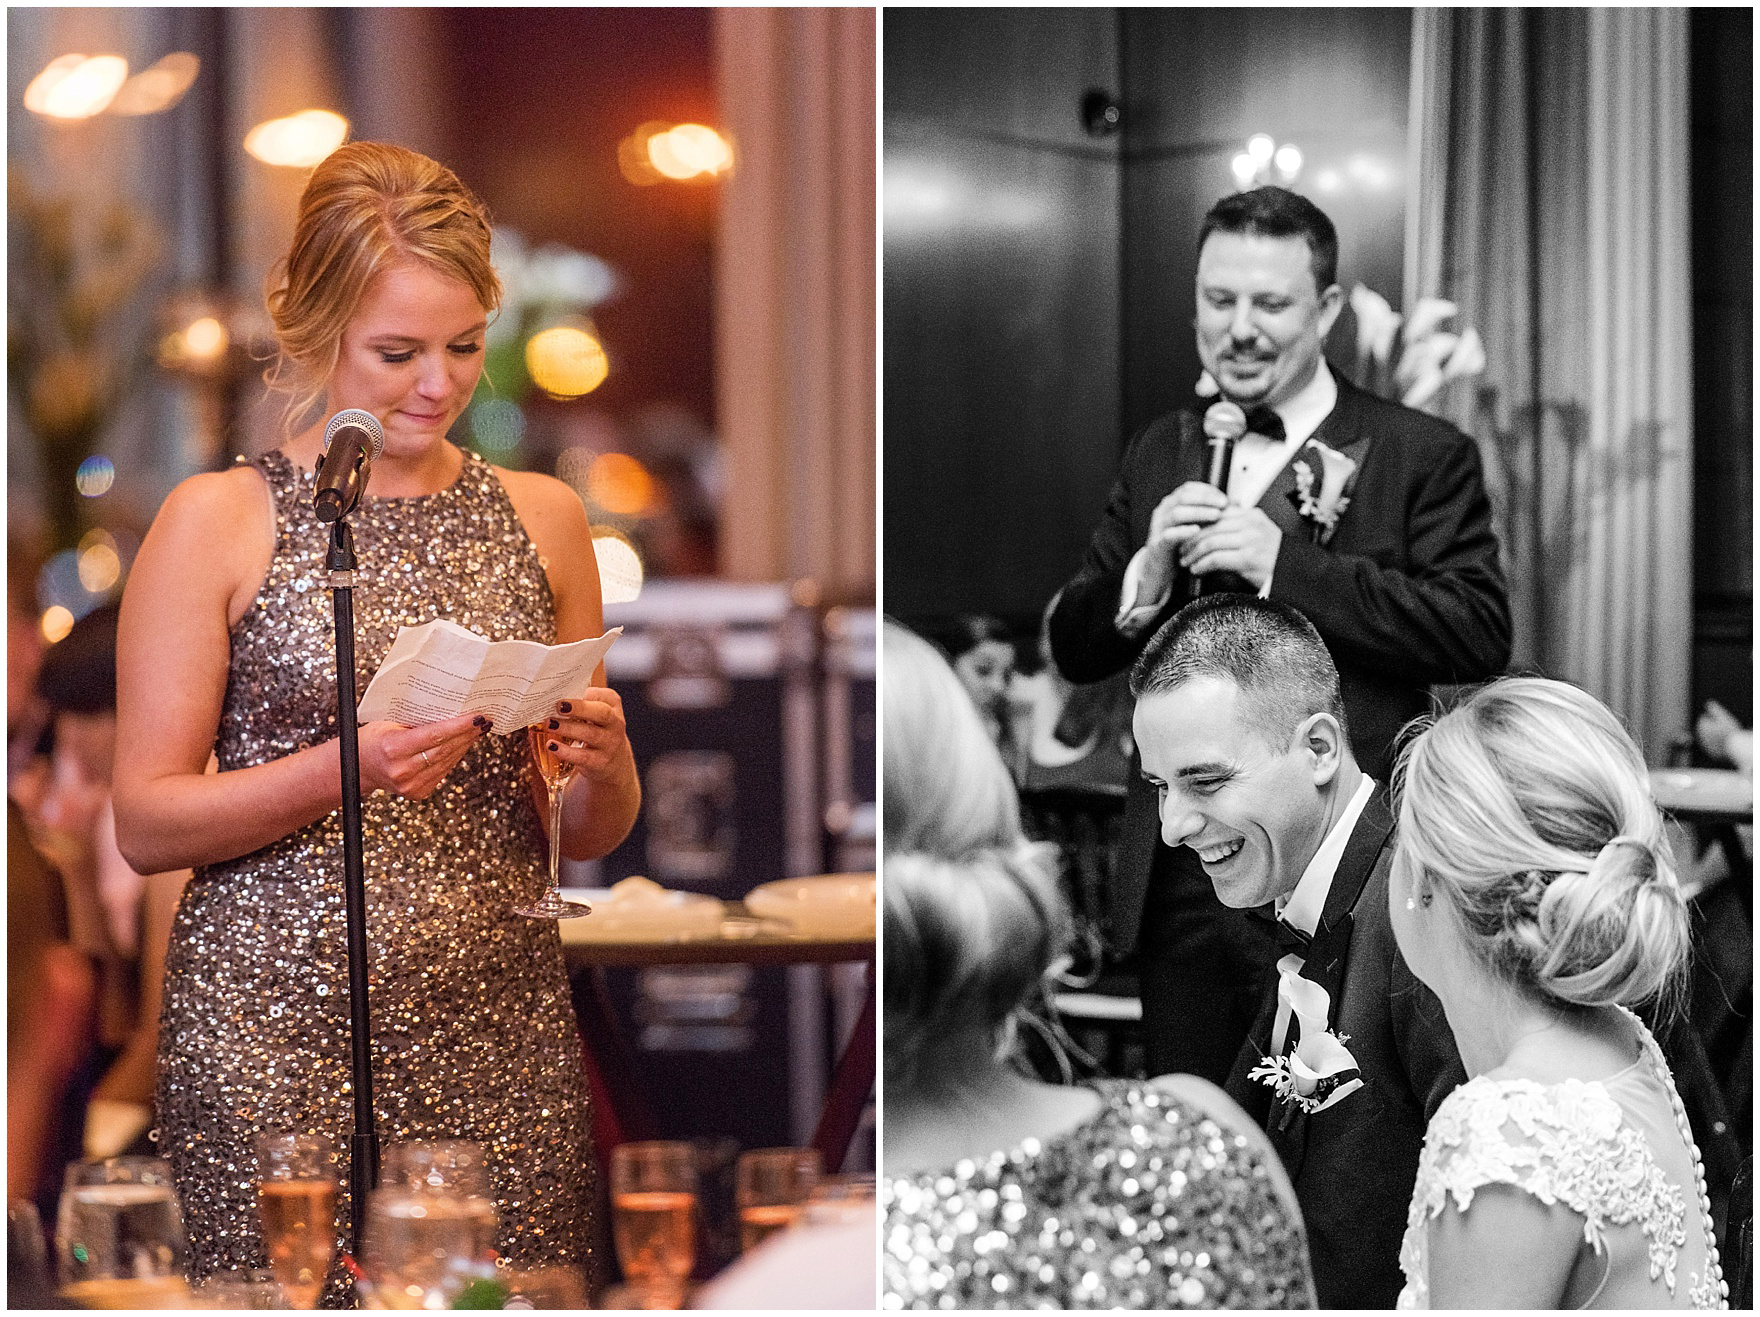 The maid of honor and best man speak during a Newberry Library Chicago wedding reception.